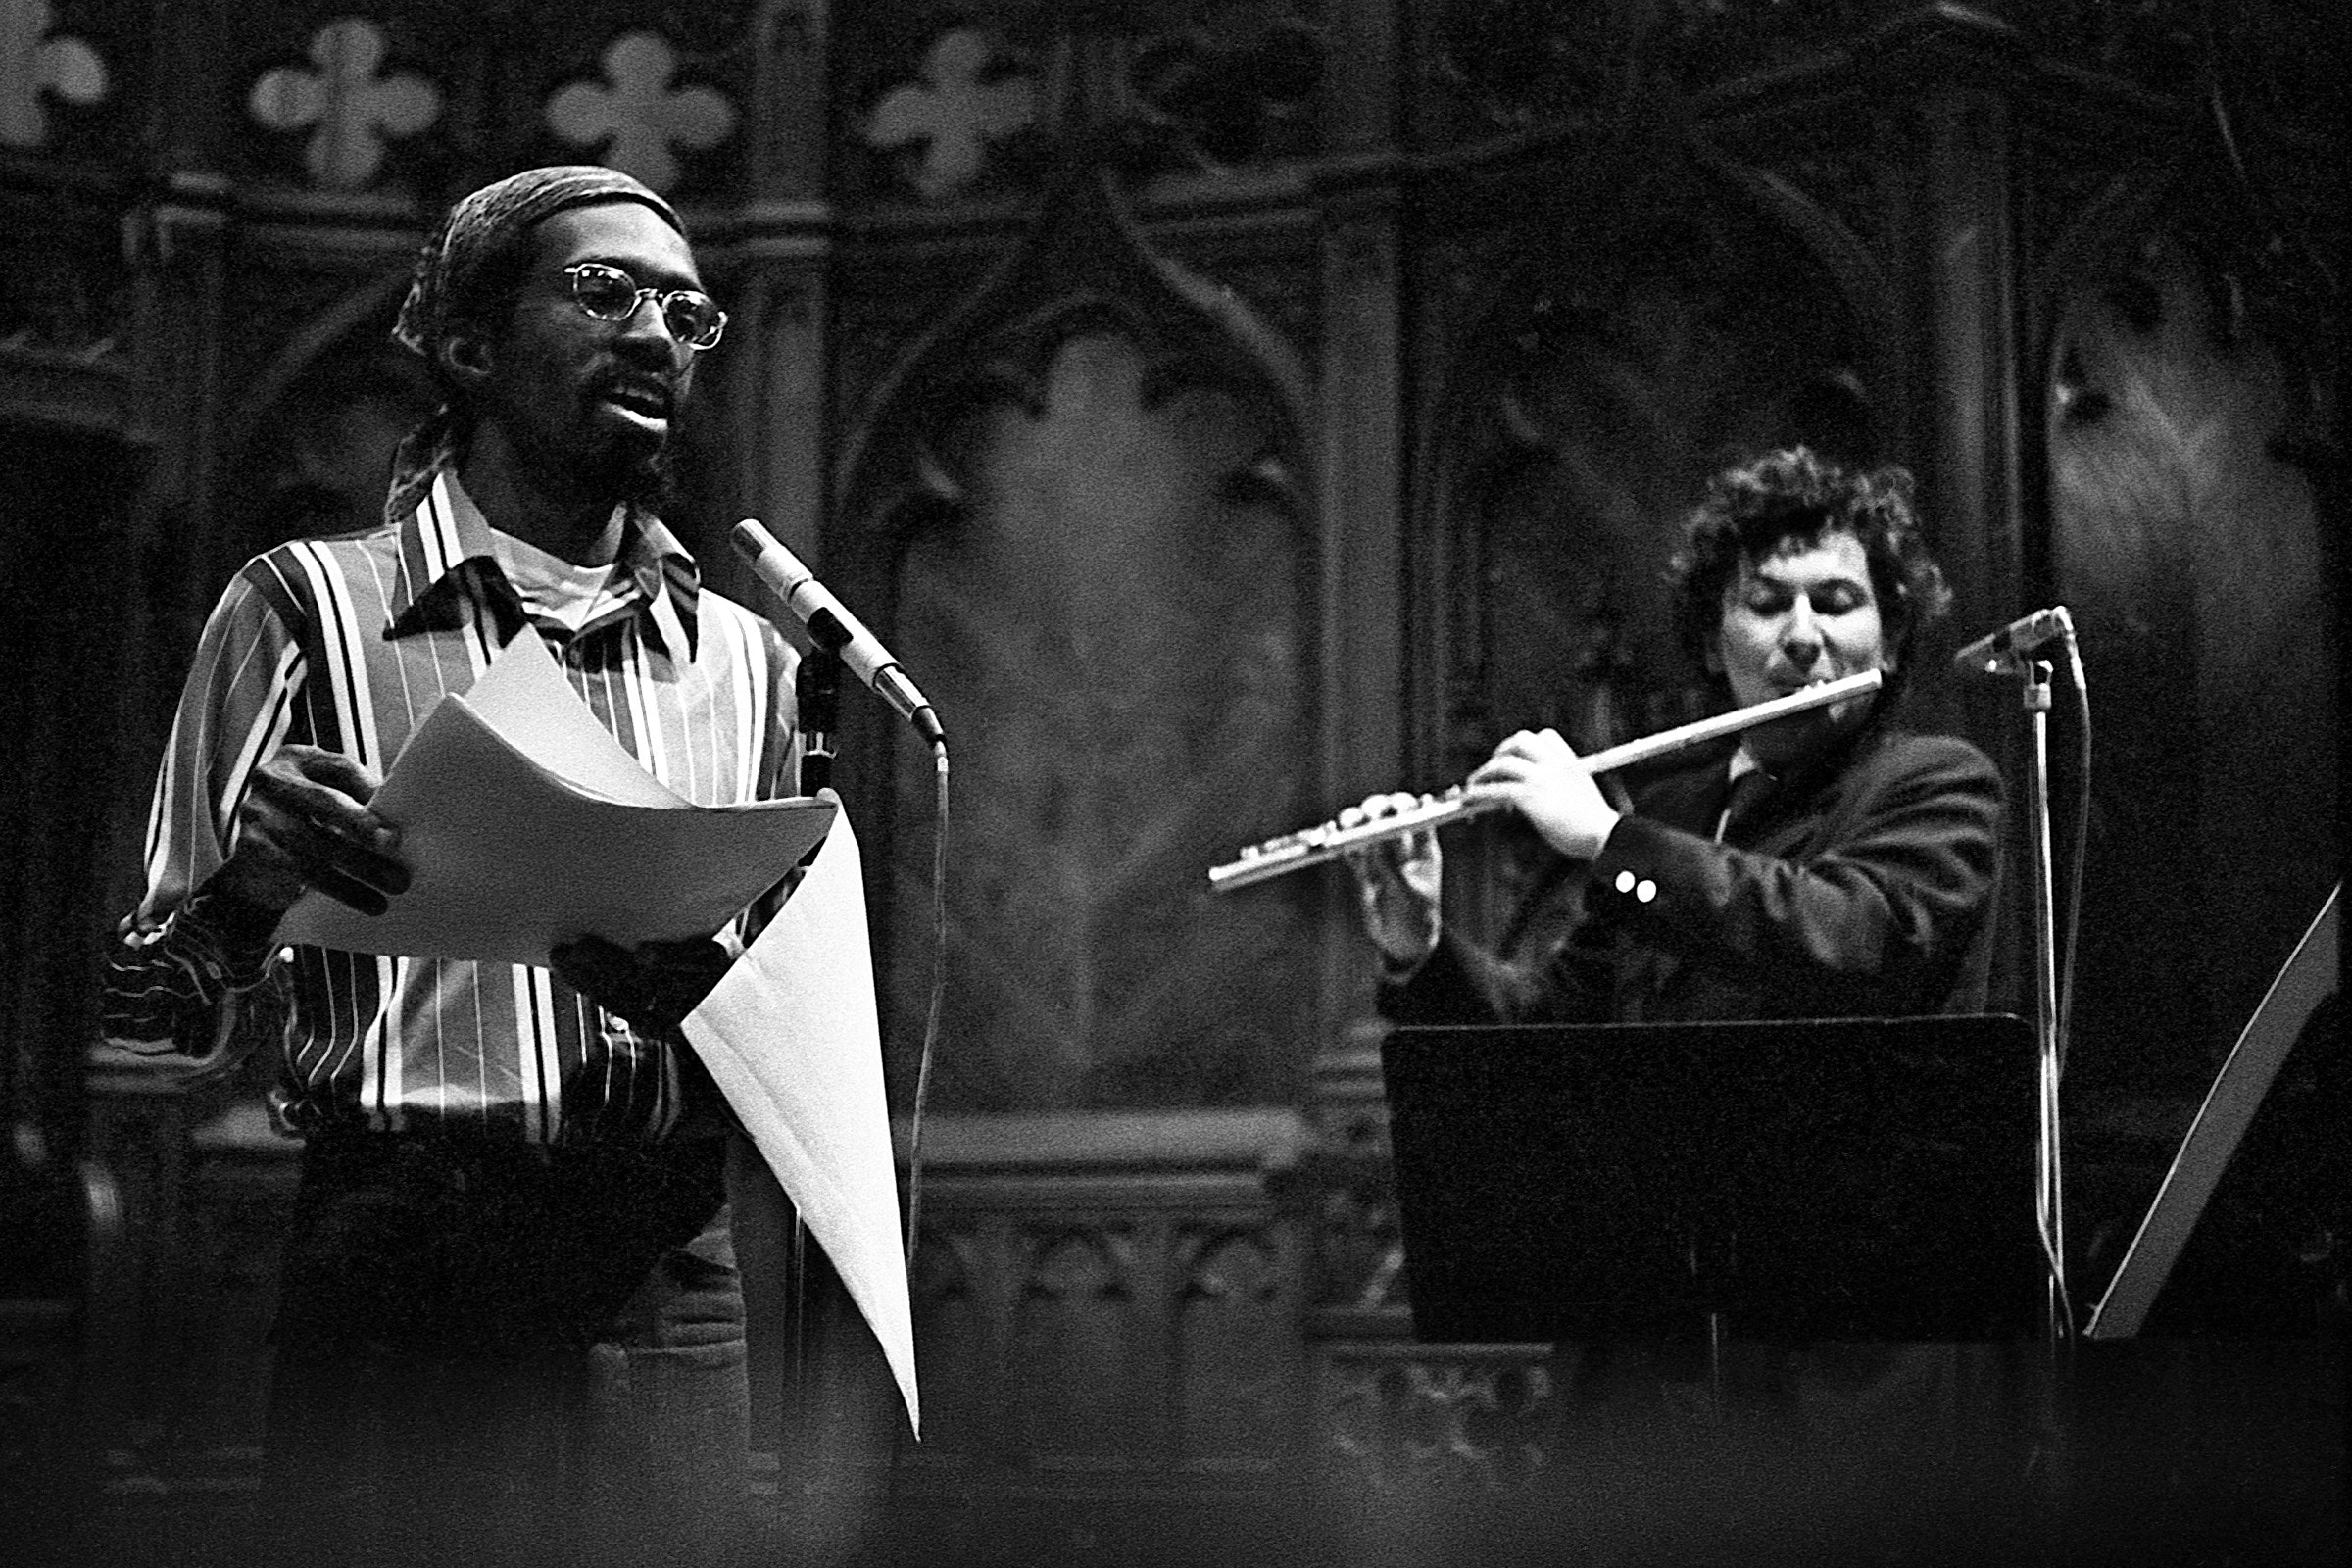 Julius Eastman and Petr Kotik on stage